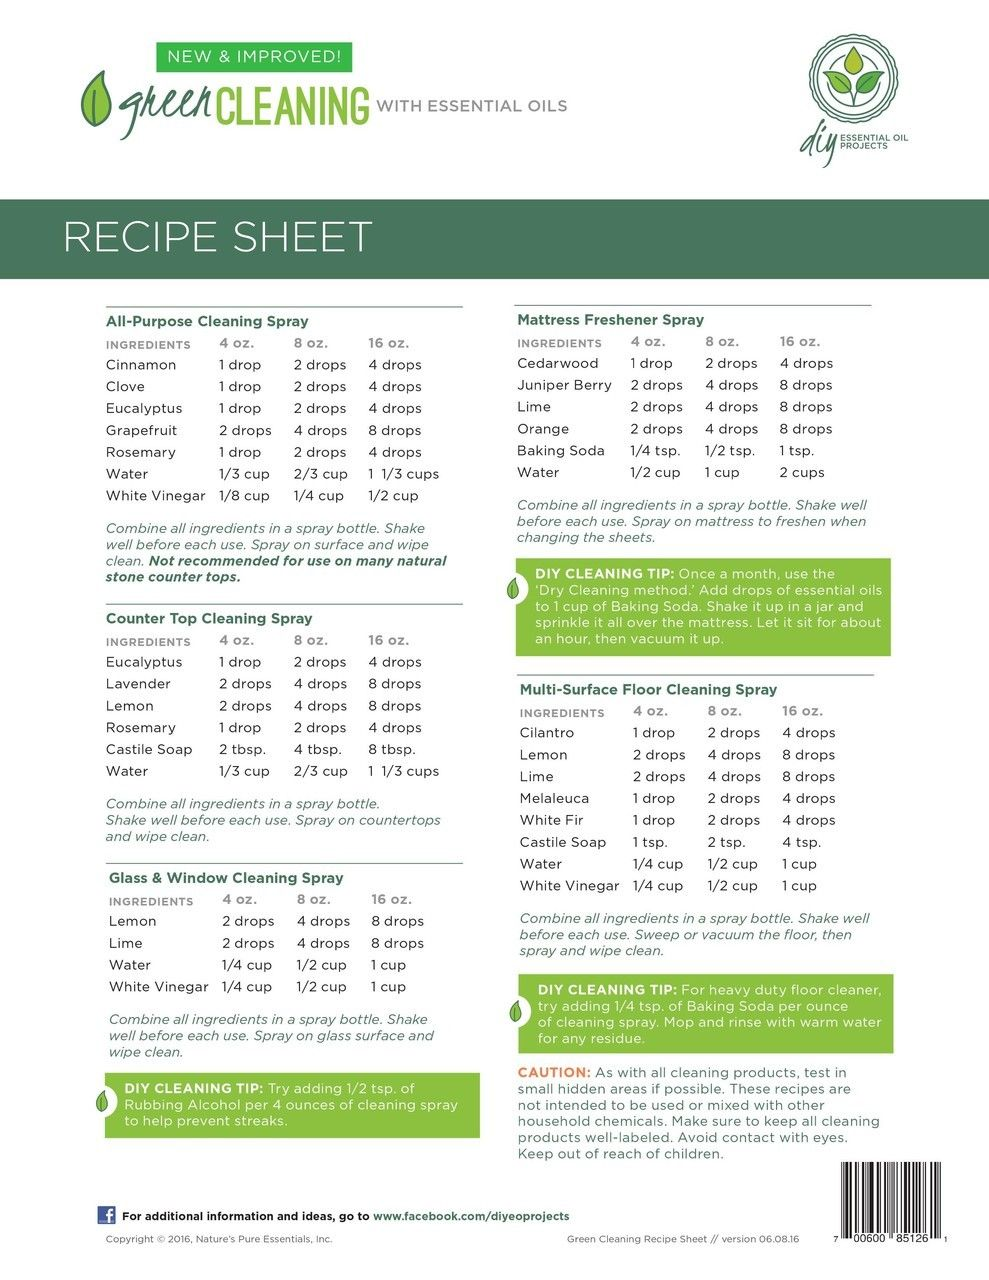 Green Cleaning With Essential Oils Recipe Sheets